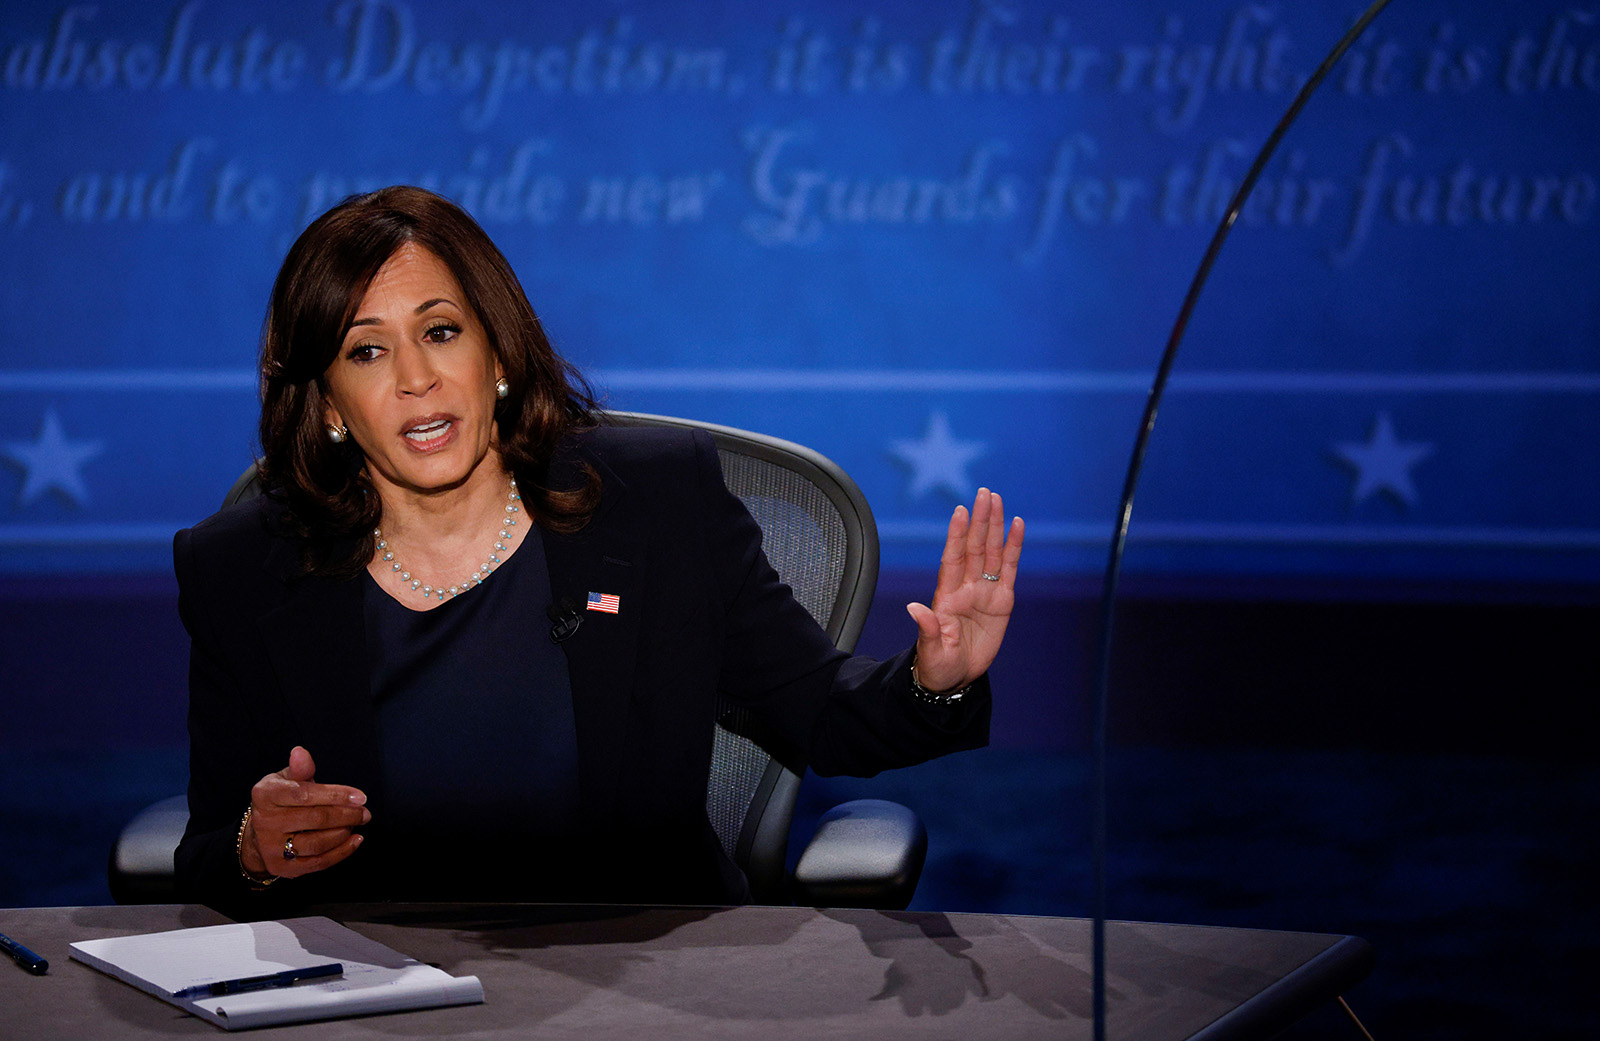 Democratic vice presidential nominee Senator Kamala Harris speaks during the vice presidential campaign debate with U.S. Vice President Mike Pence in Salt Lake City on Wednesday.